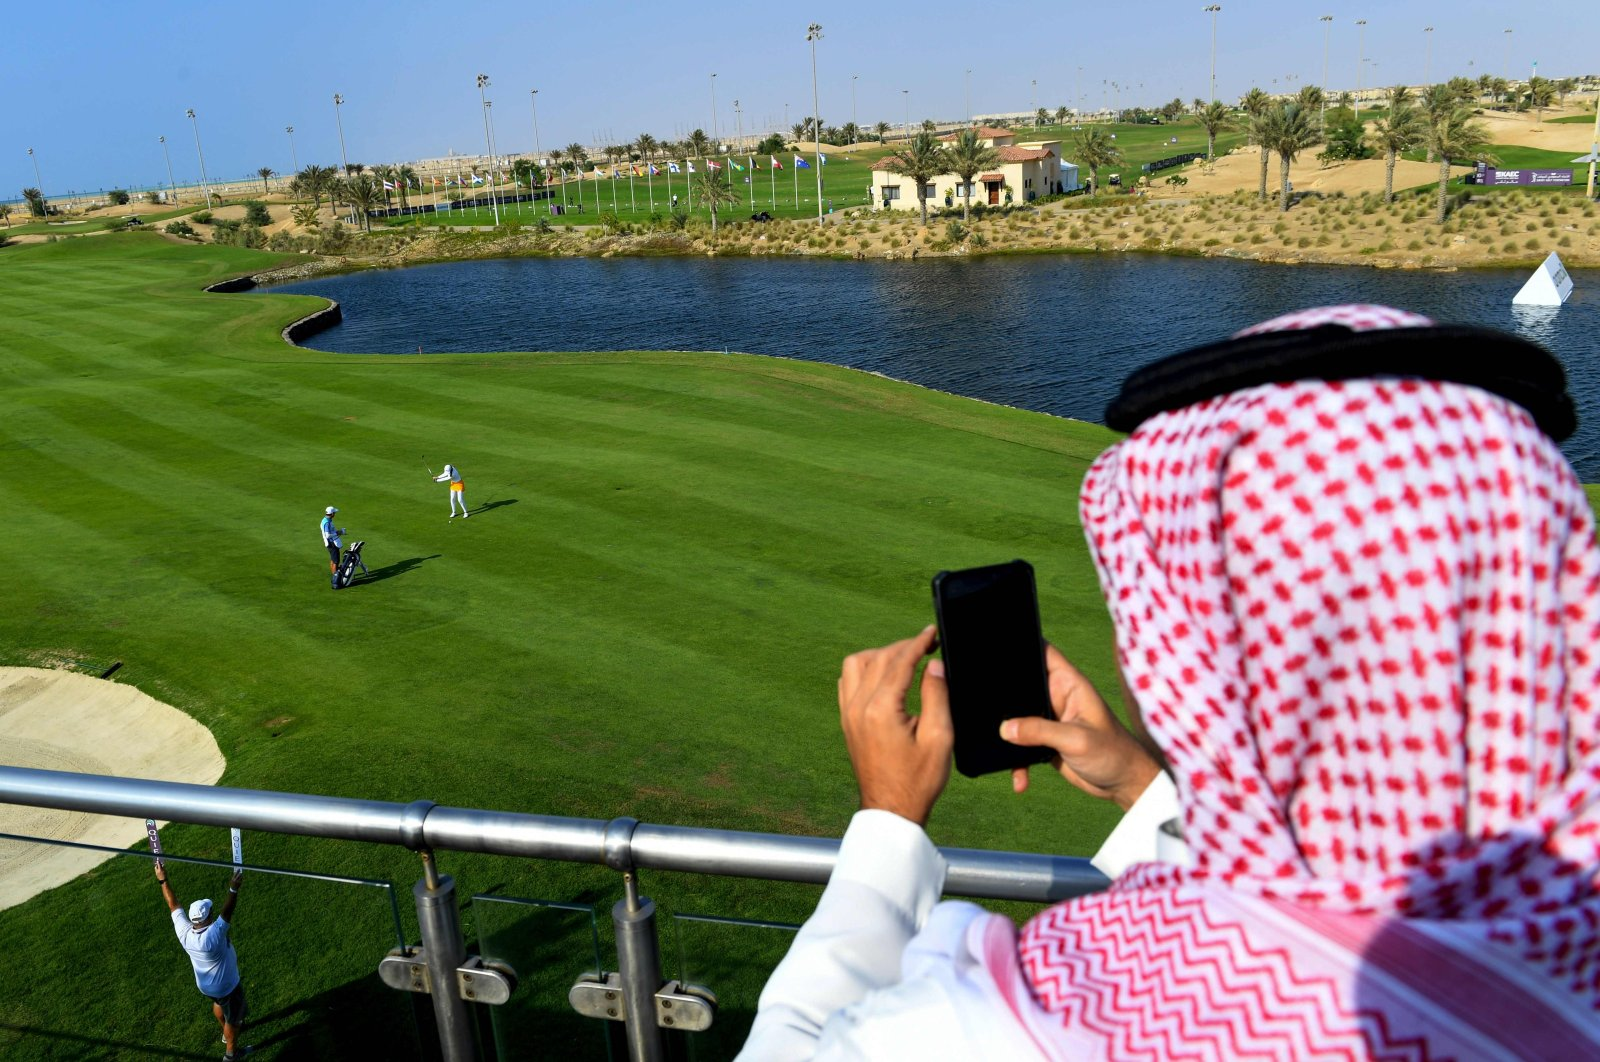 A Saudi man watches a golfer compete in the Saudi Ladies International golf tournament at the King Abdullah Economic City, north of Jeddah, (AFP Photo)